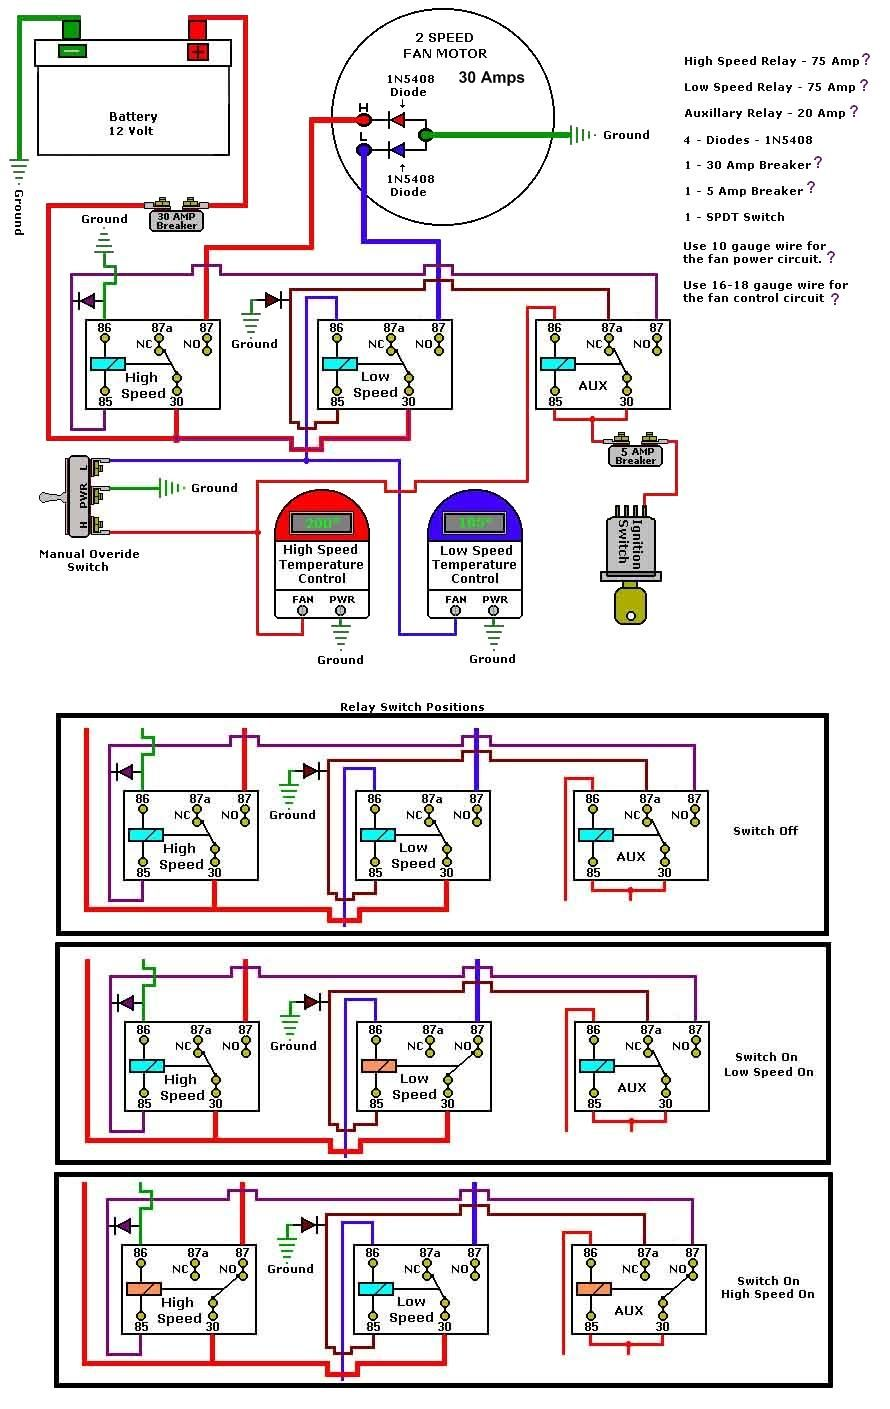 hight resolution of 3 speed fan motor wiring diagram impremedia net 3 speed electric fan wiring diagram 3 speed